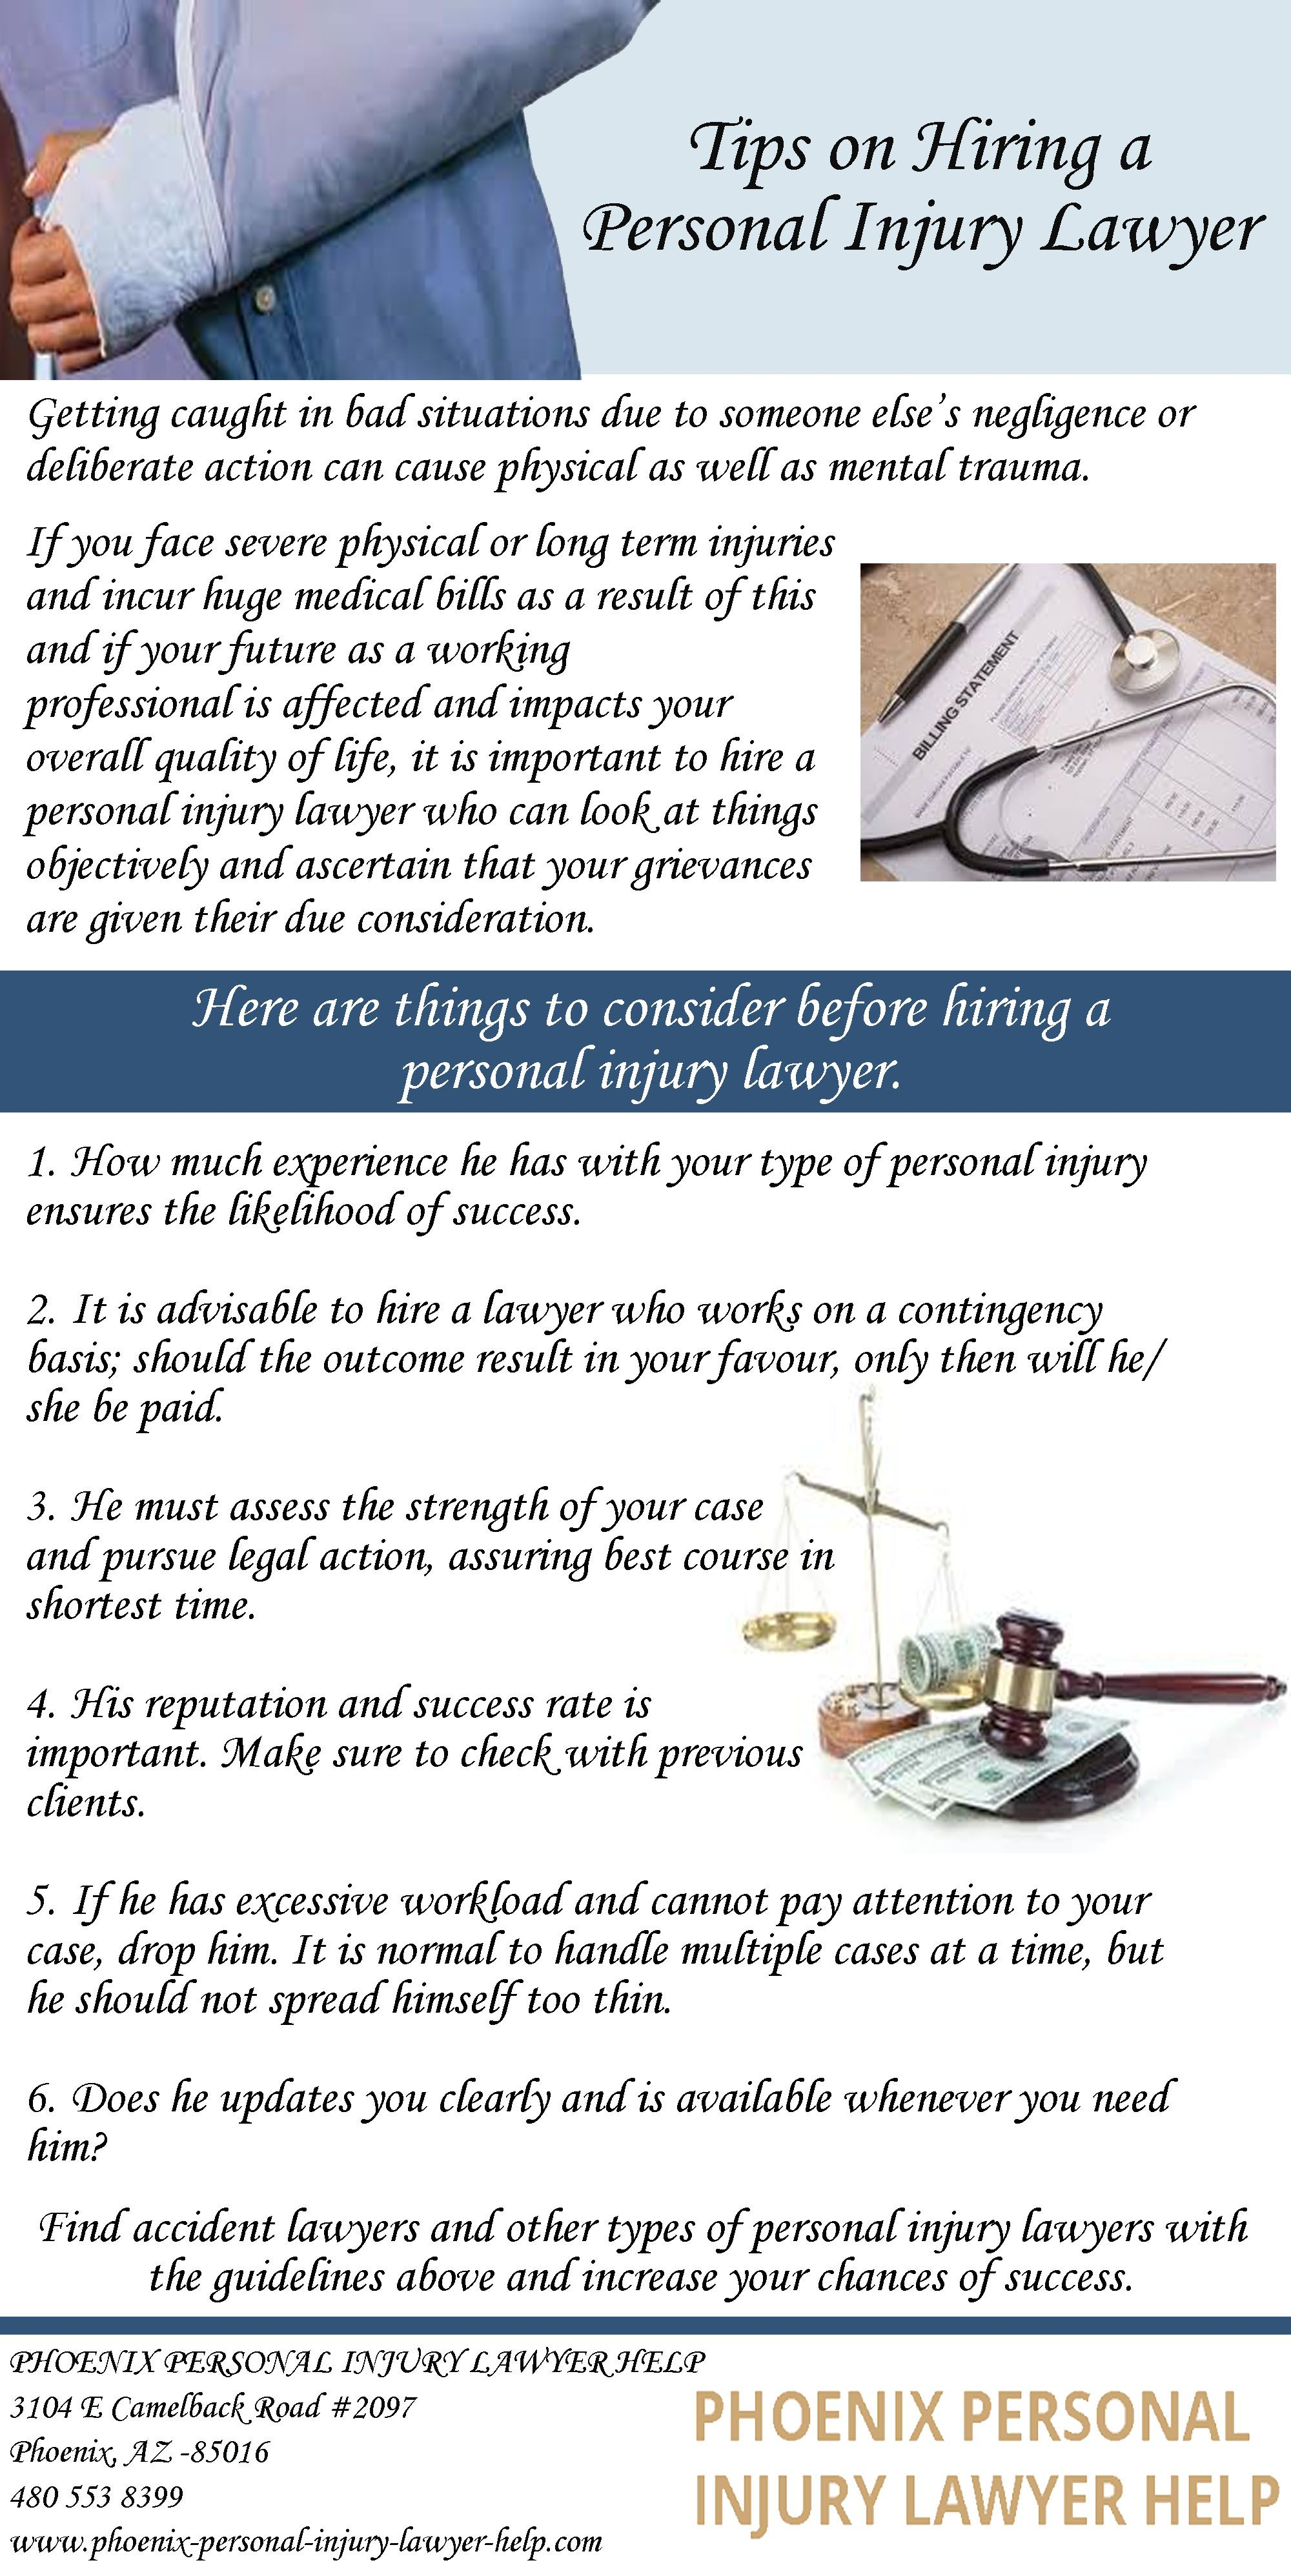 If You Face Severe Physical Or Long Term Injuries And Incur Huge